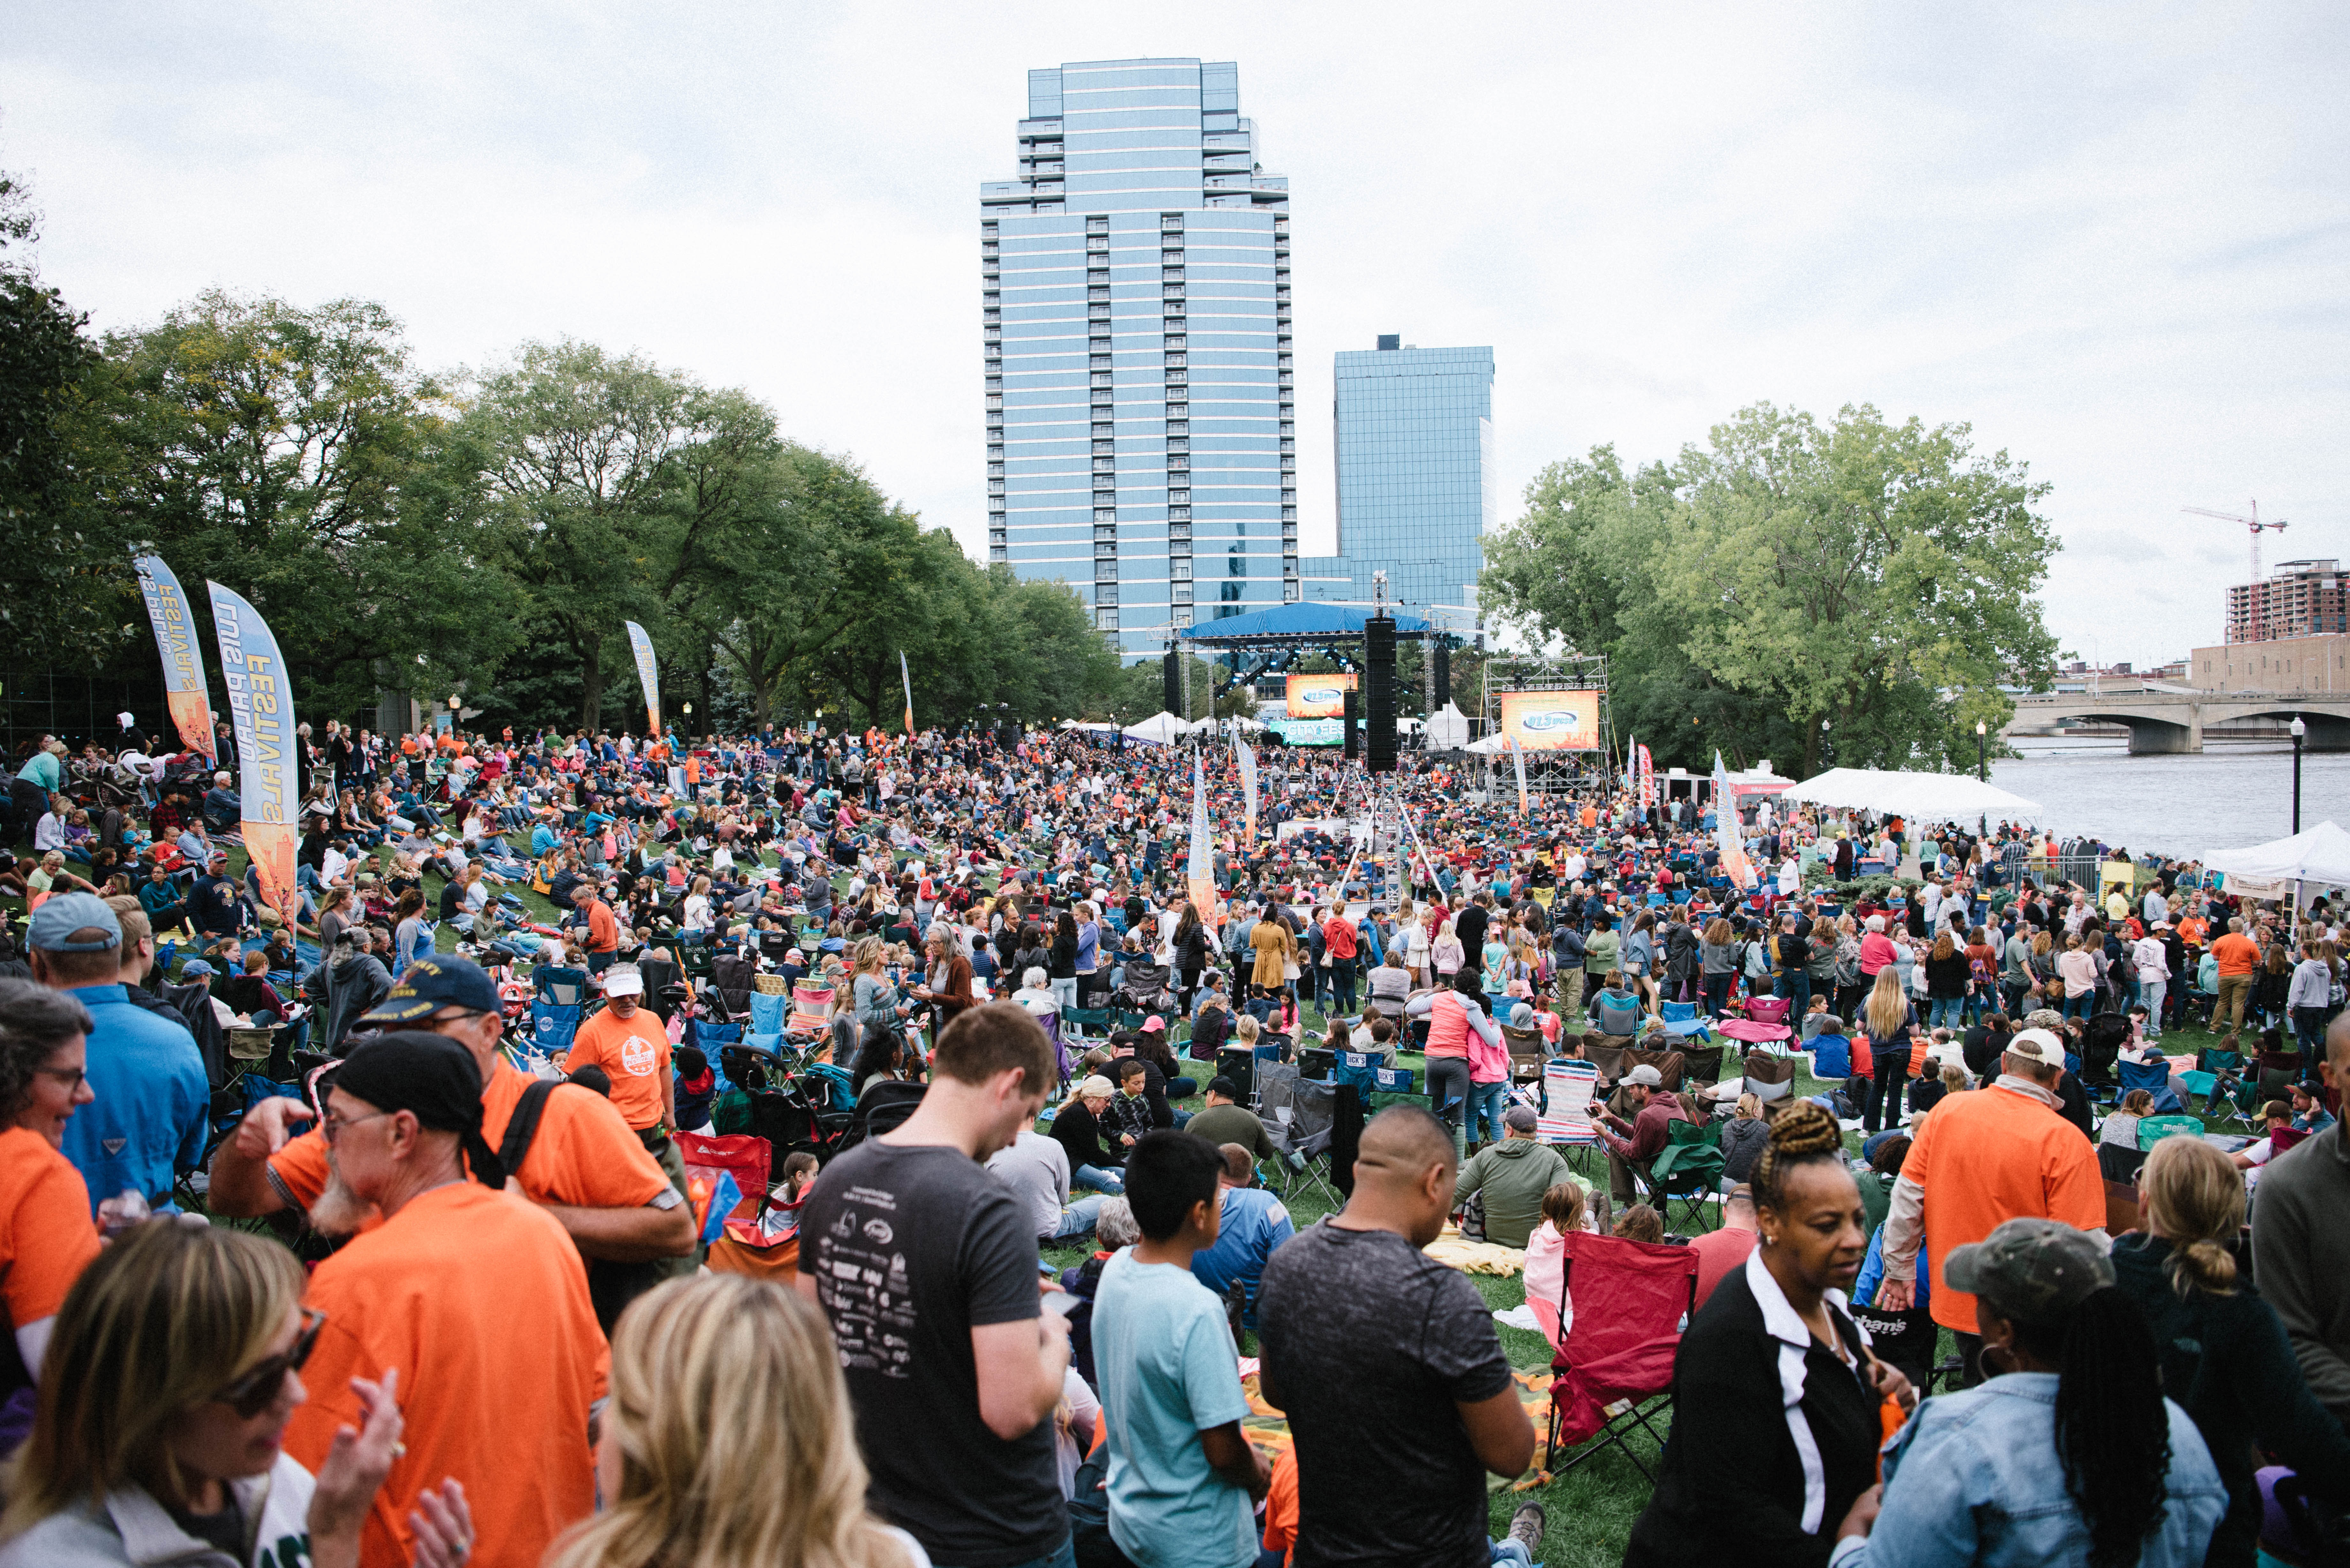 Sharing the Gospel in post-CityFest West Michigan